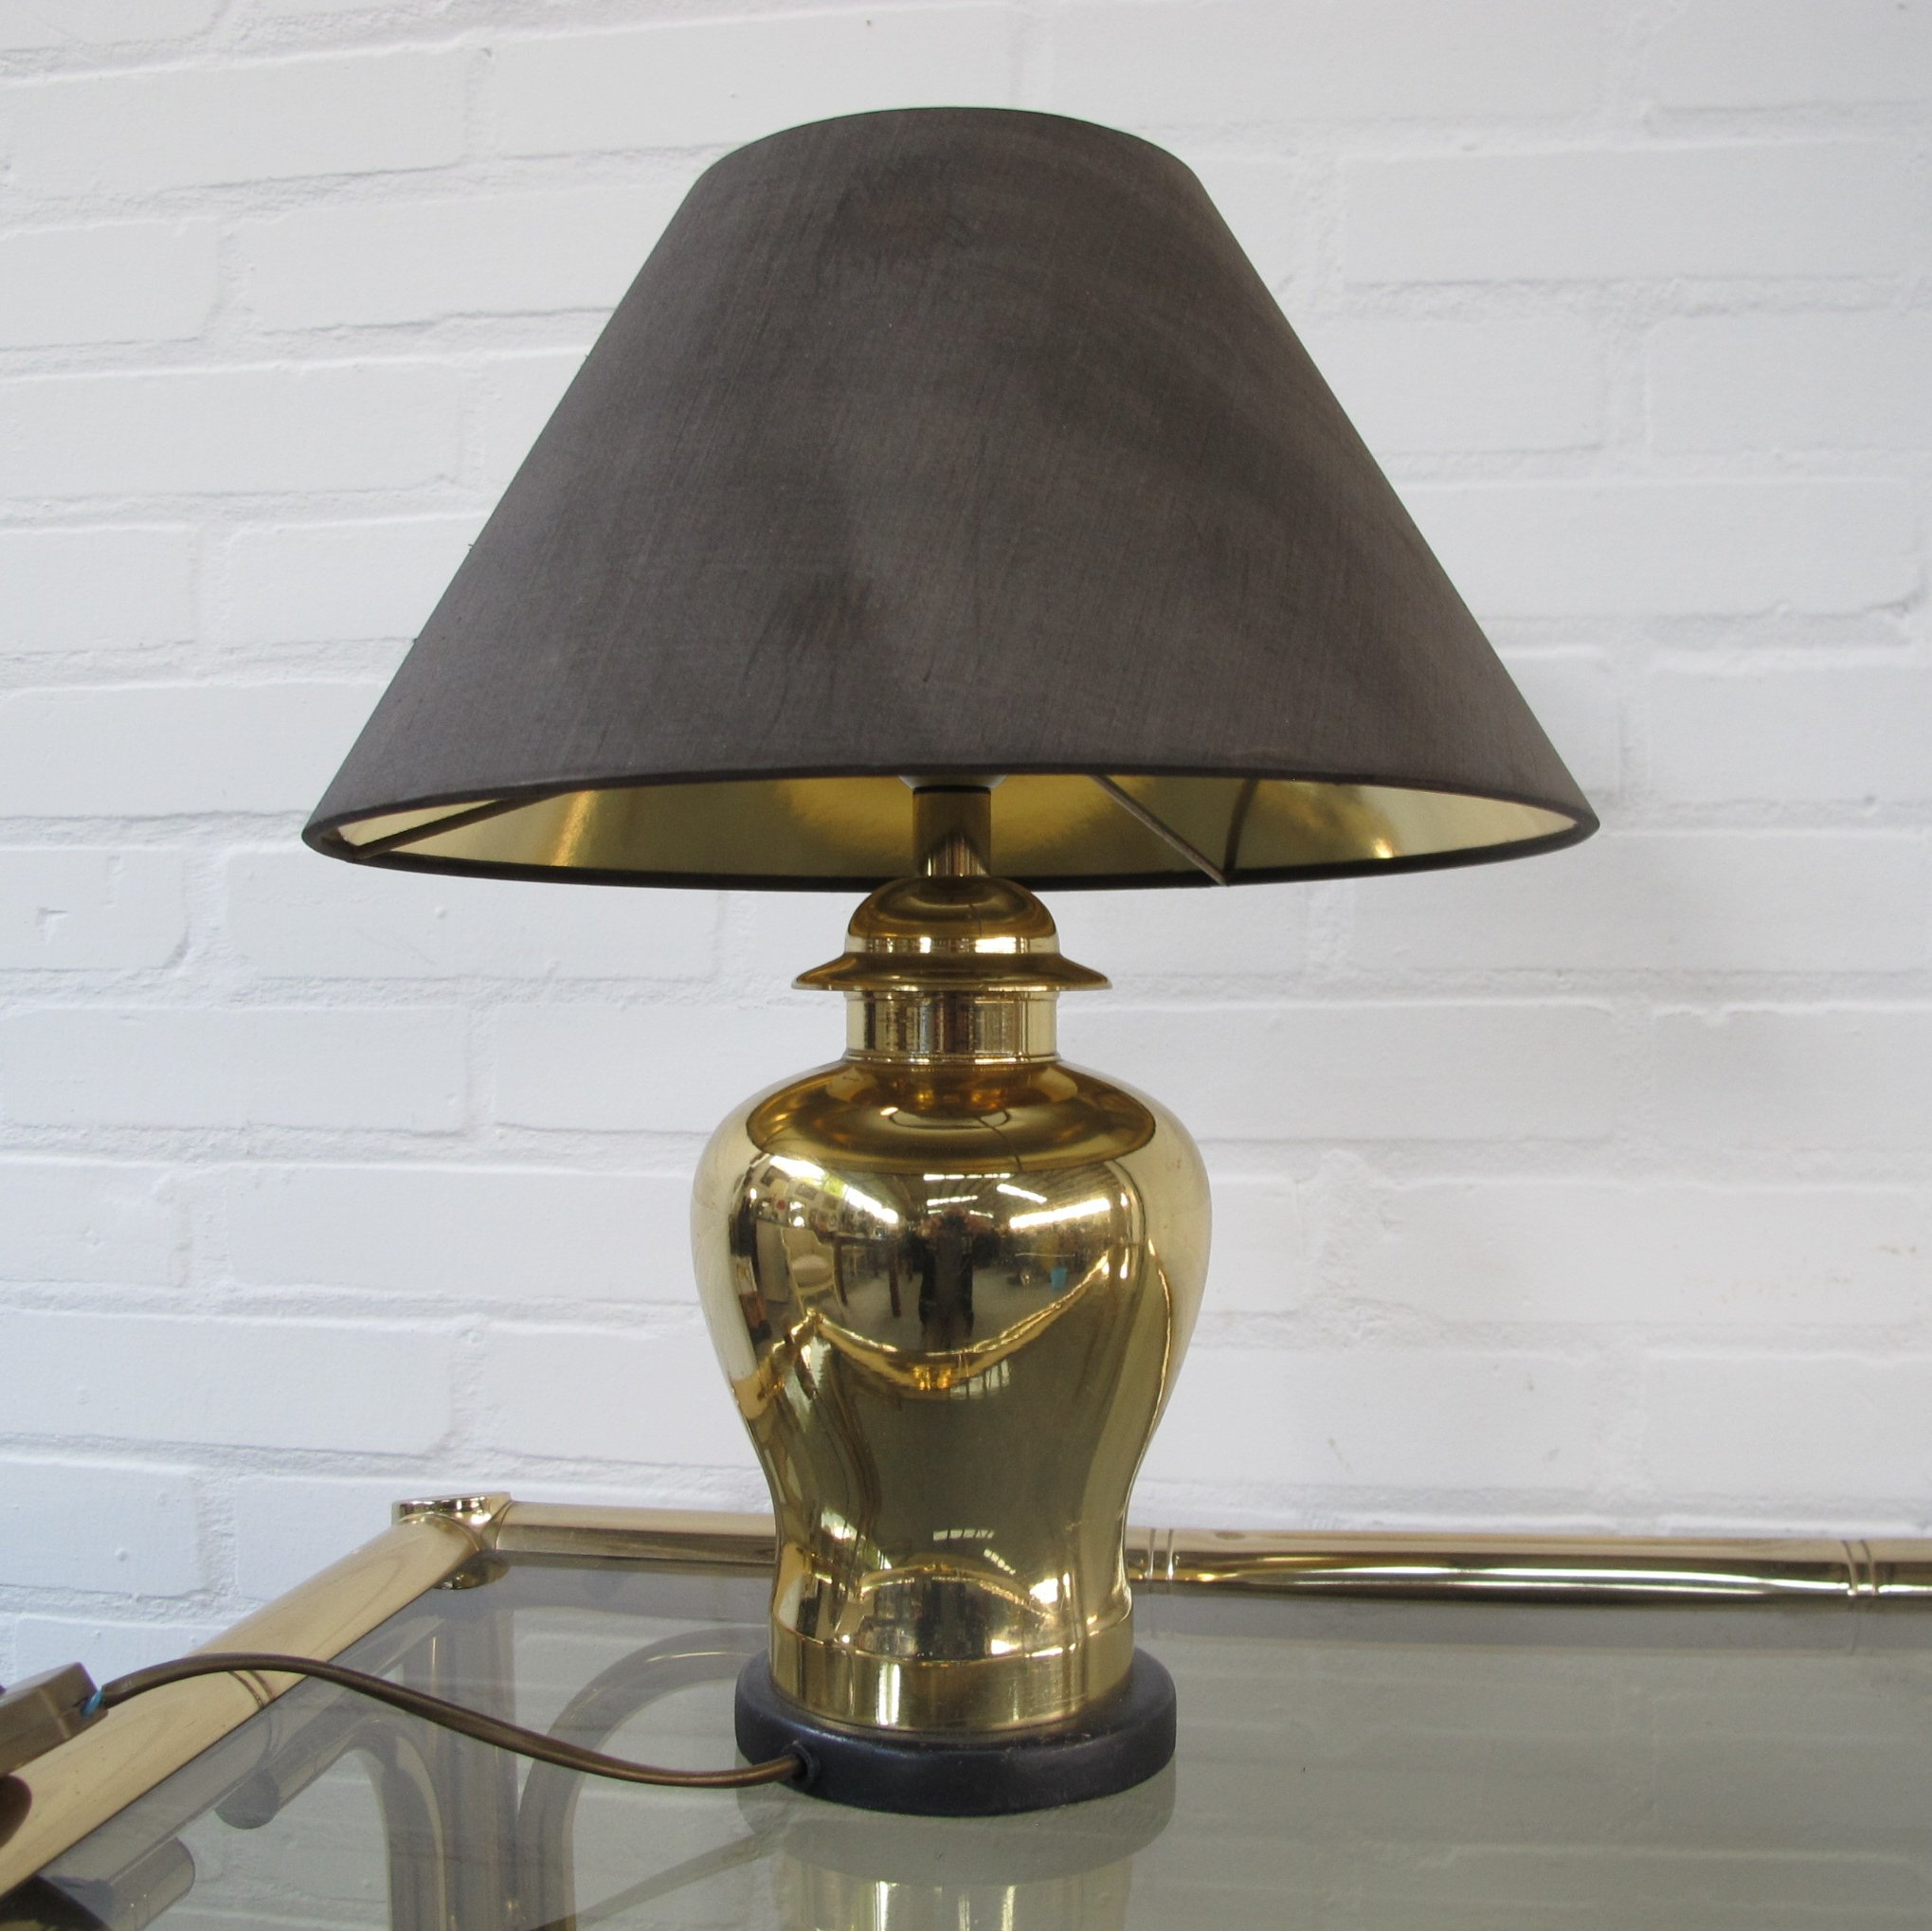 Vintage Brass Table Lamp 1970s 86805